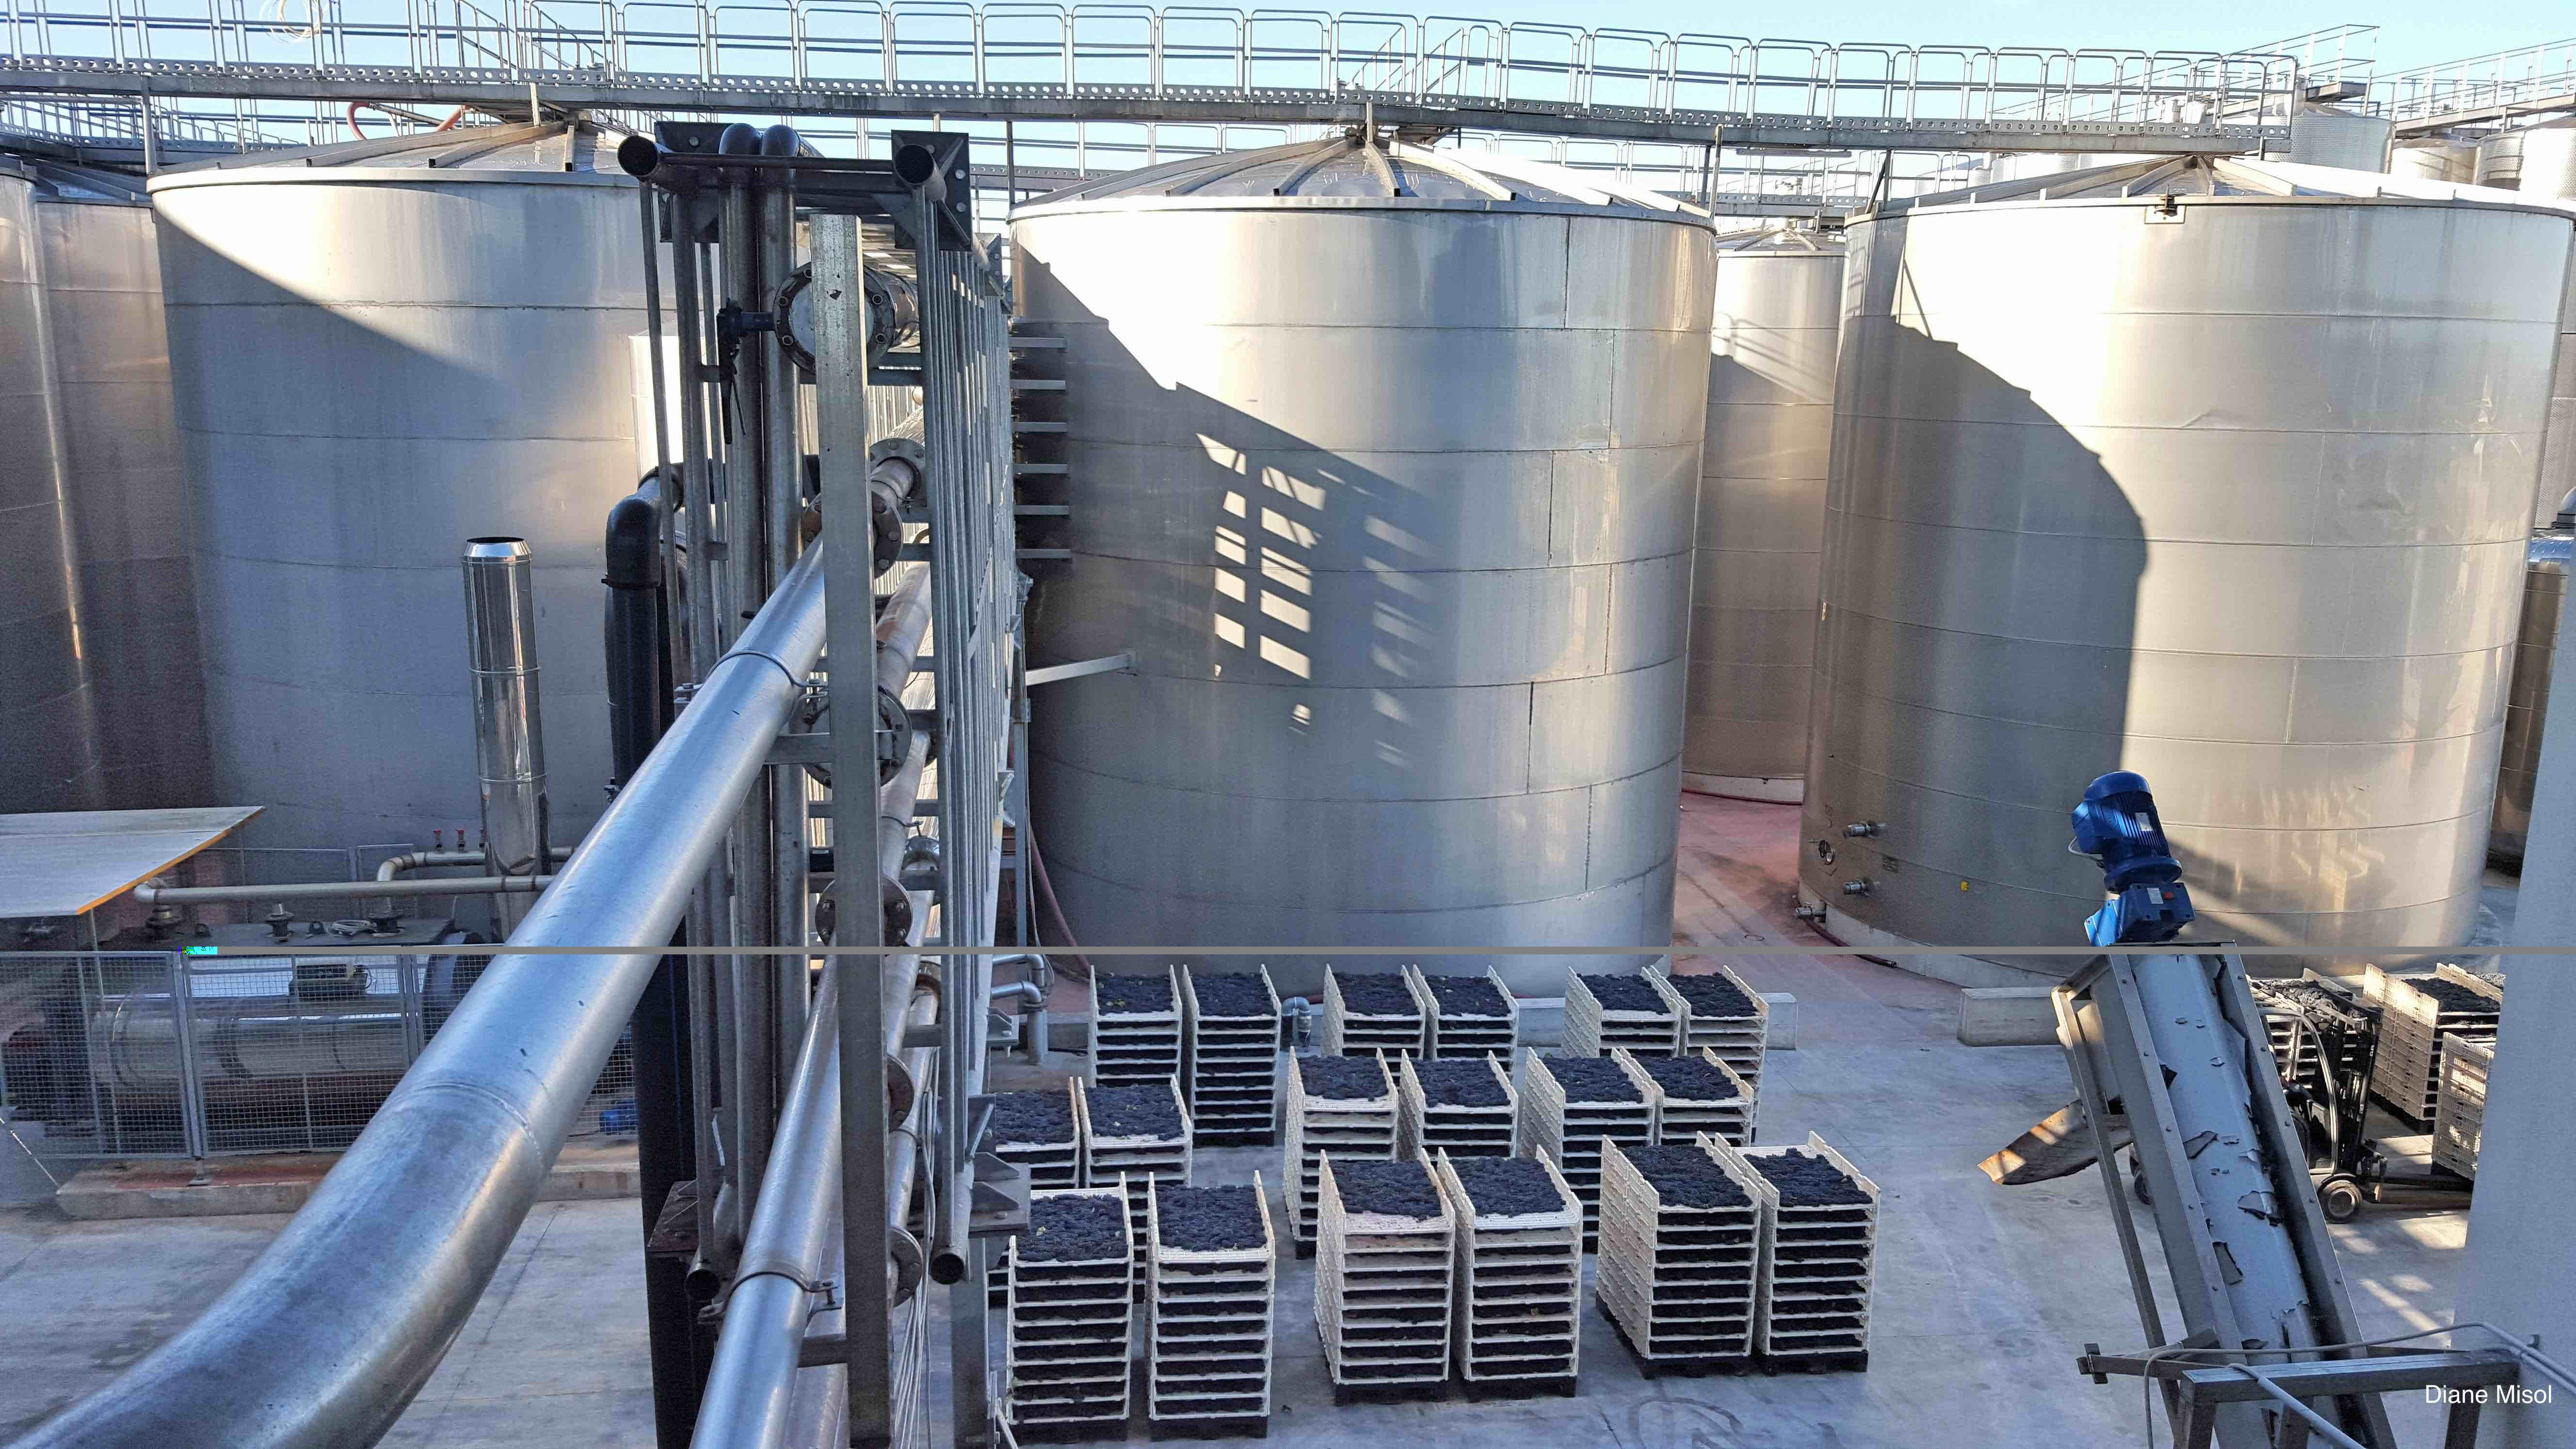 Crates of grapes beside huge wine tanks, Italy